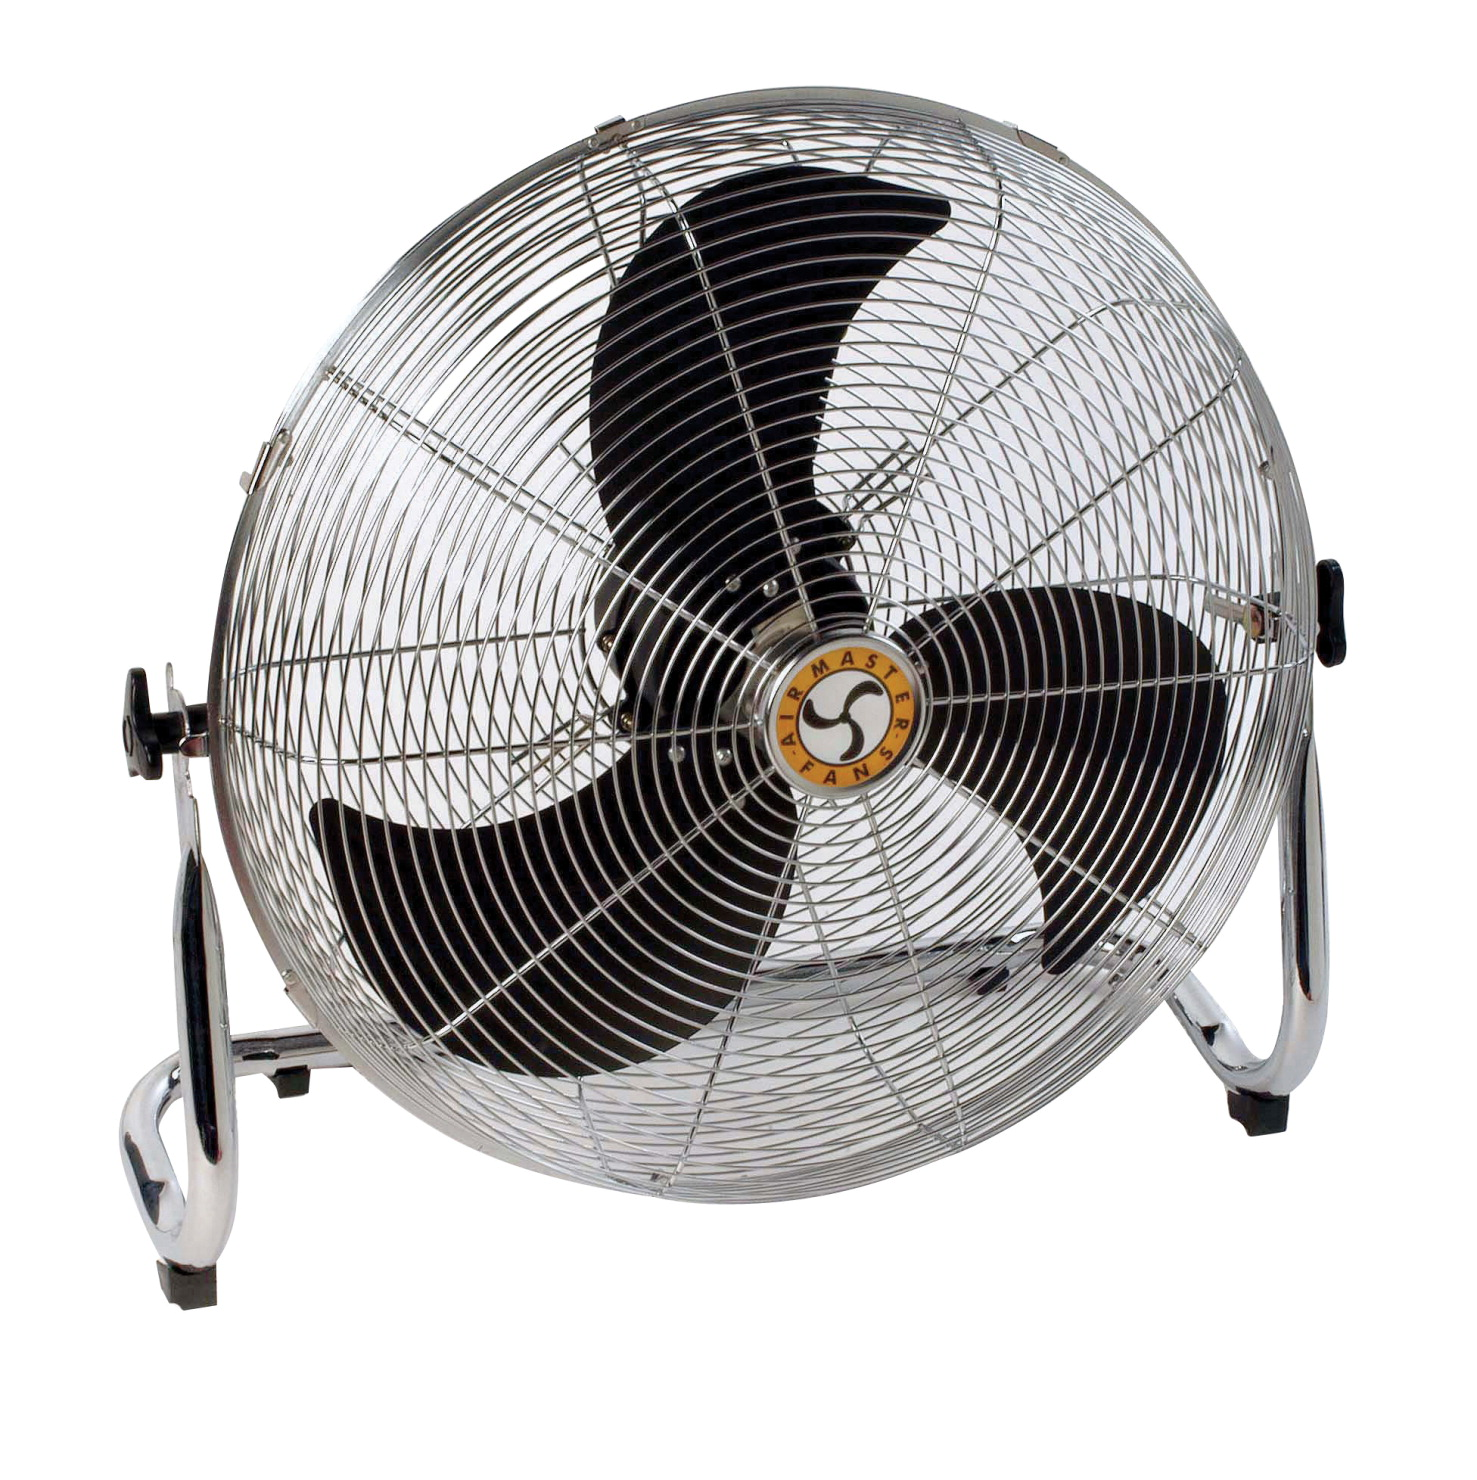 Chelsea Fans Industrial Pivot Fan with Workstation Low Stand, 4 in Dia, 3-Speed, 115 V, 10 ft Cord